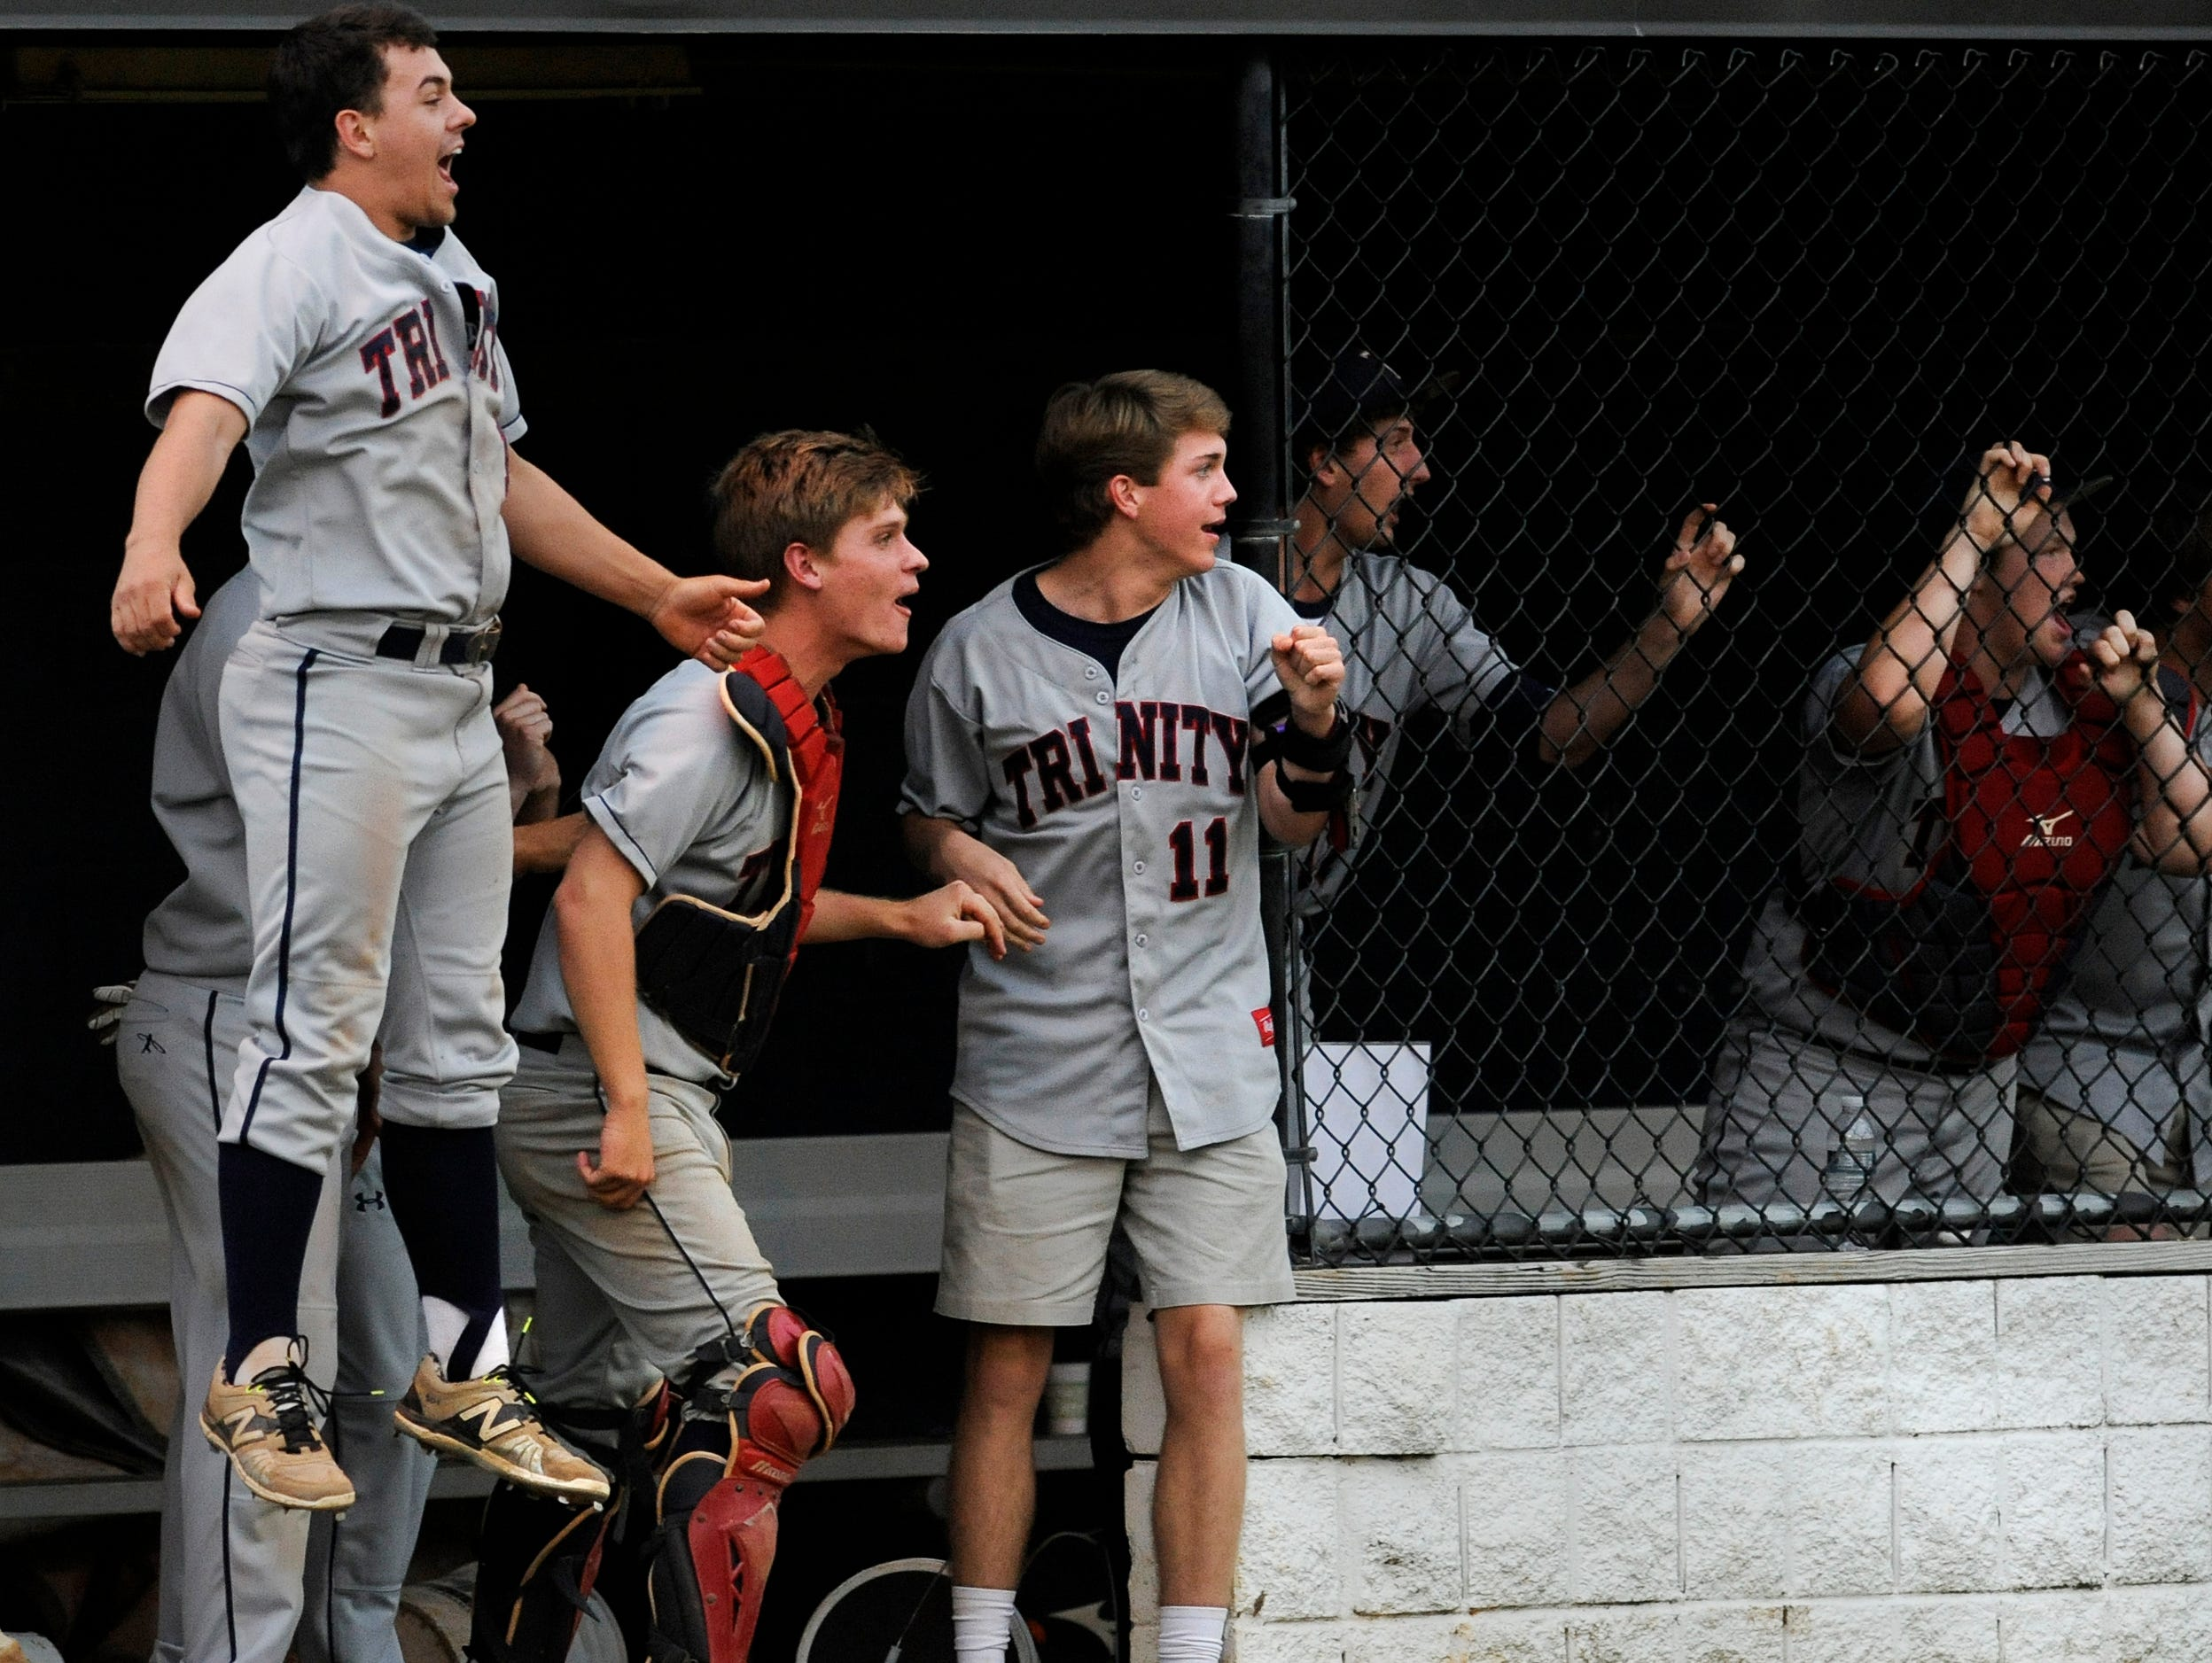 The Trinity dugout celebrates sixth inning runs in the first game of a double header against St. James on the St. James campus in Montgomery, Ala., on Friday April 24, 2015.